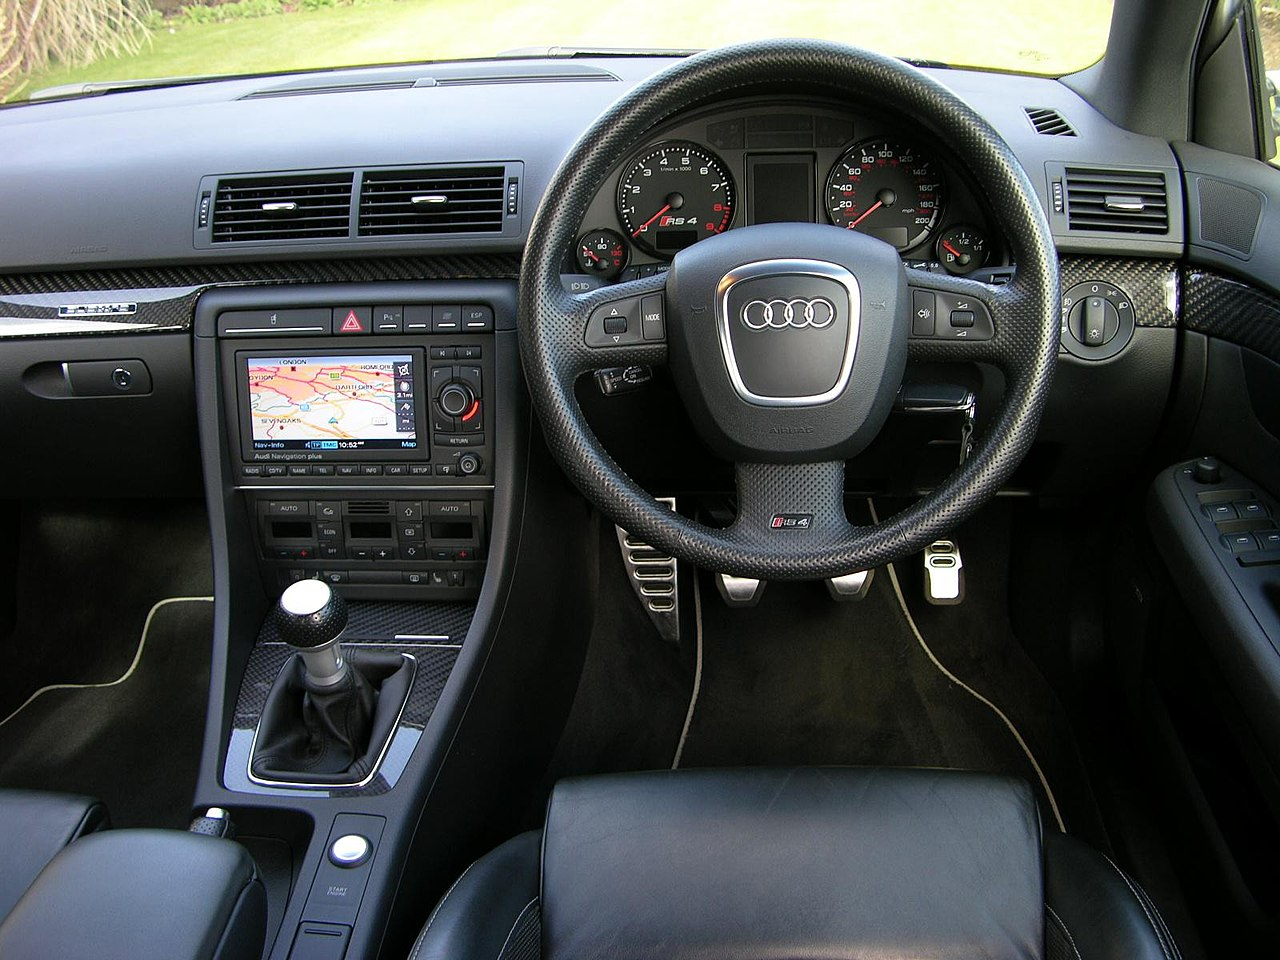 File int rieur audi rs4 wikimedia commons for Audi a4 interieur